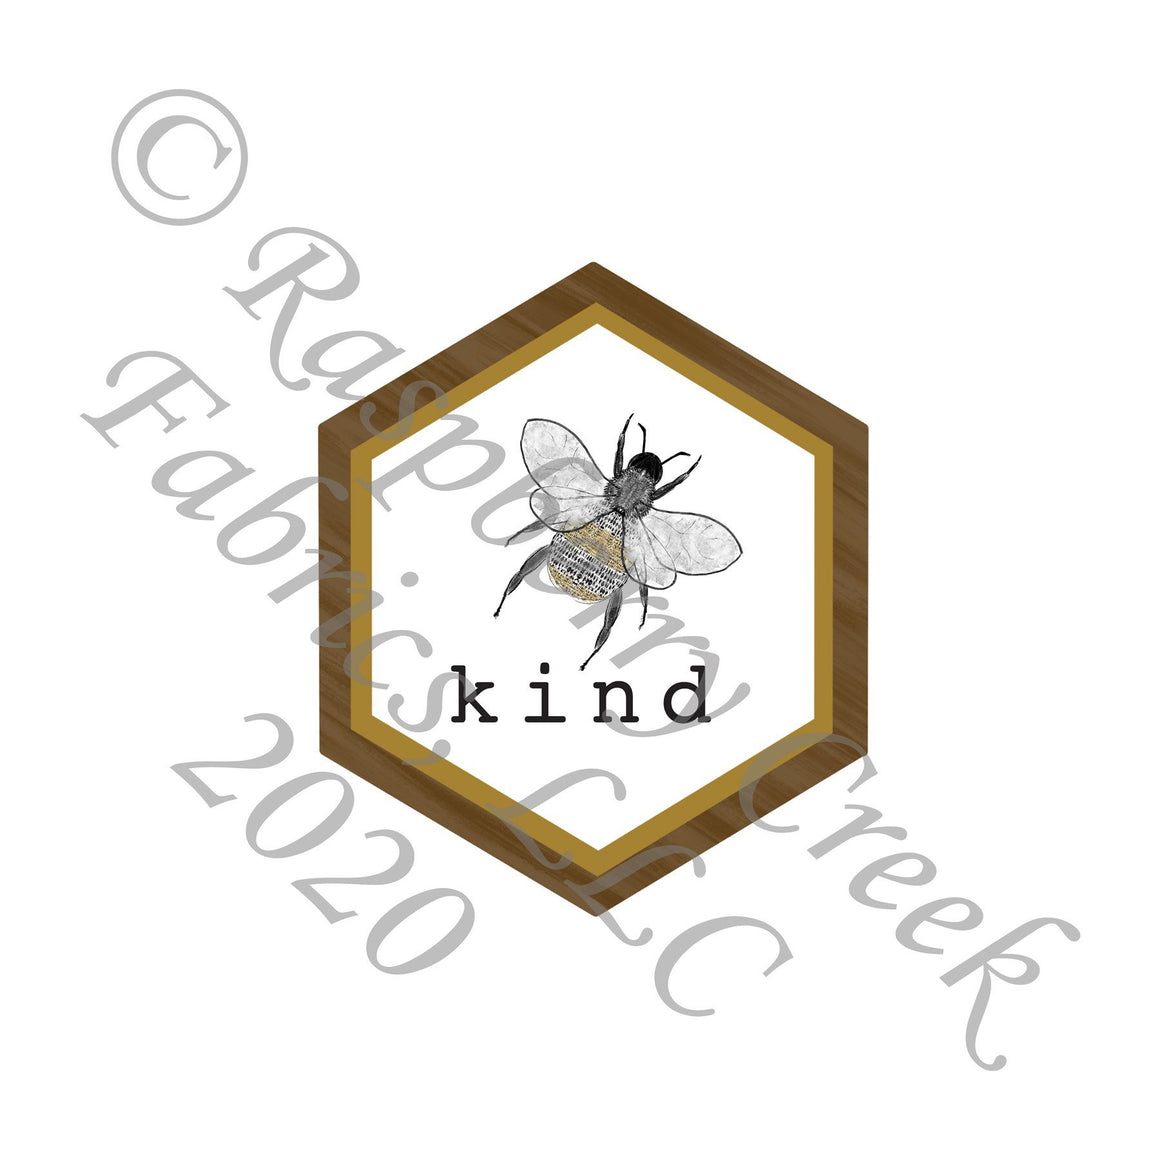 Tonal Mustard Gold Grey and Brown Bee Kind Panel, Save The Bees by Kelsey Shaw for Club Fabrics - Raspberry Creek Fabrics